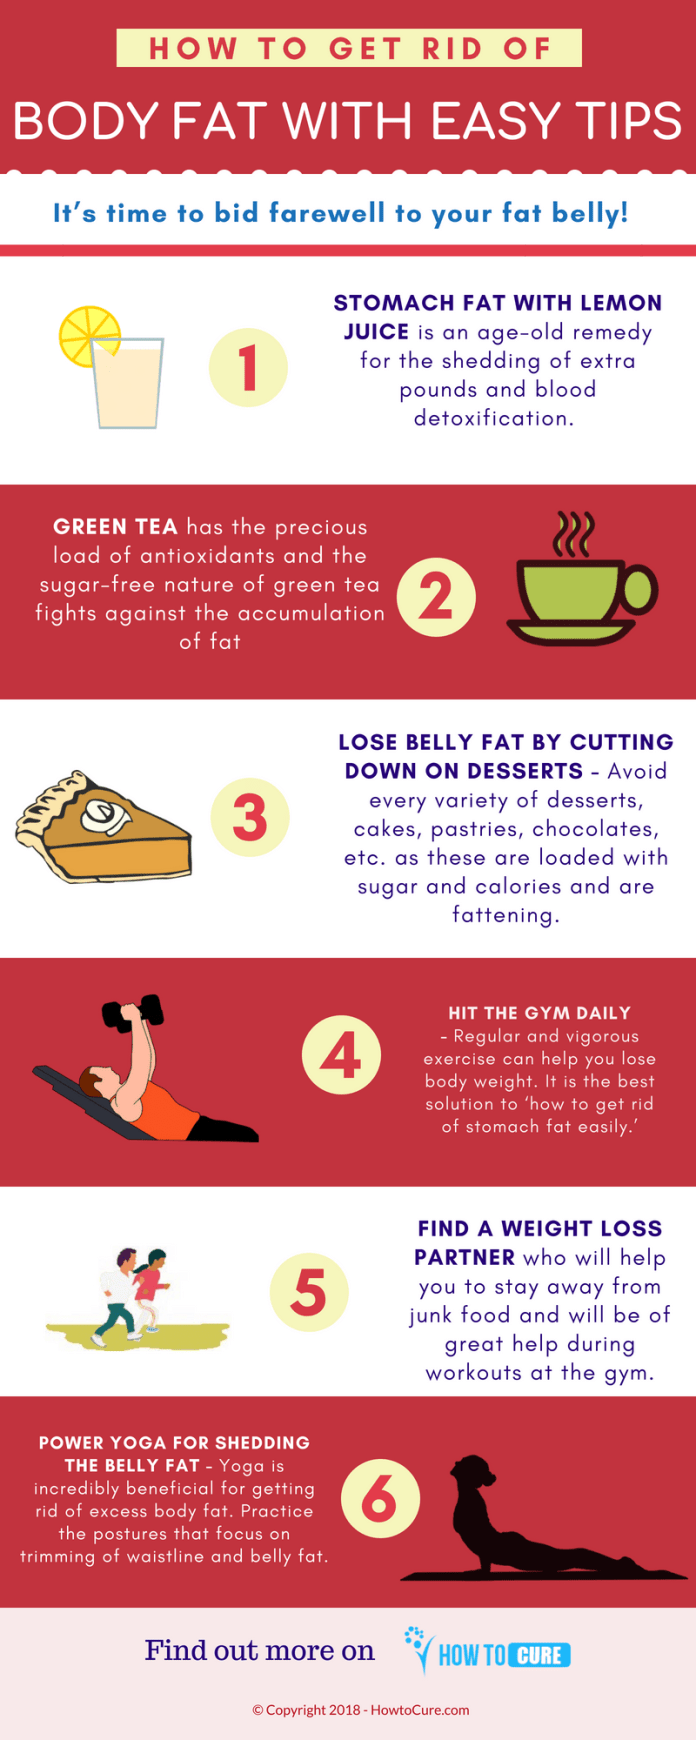 how to get rid of body fat tips - infographic